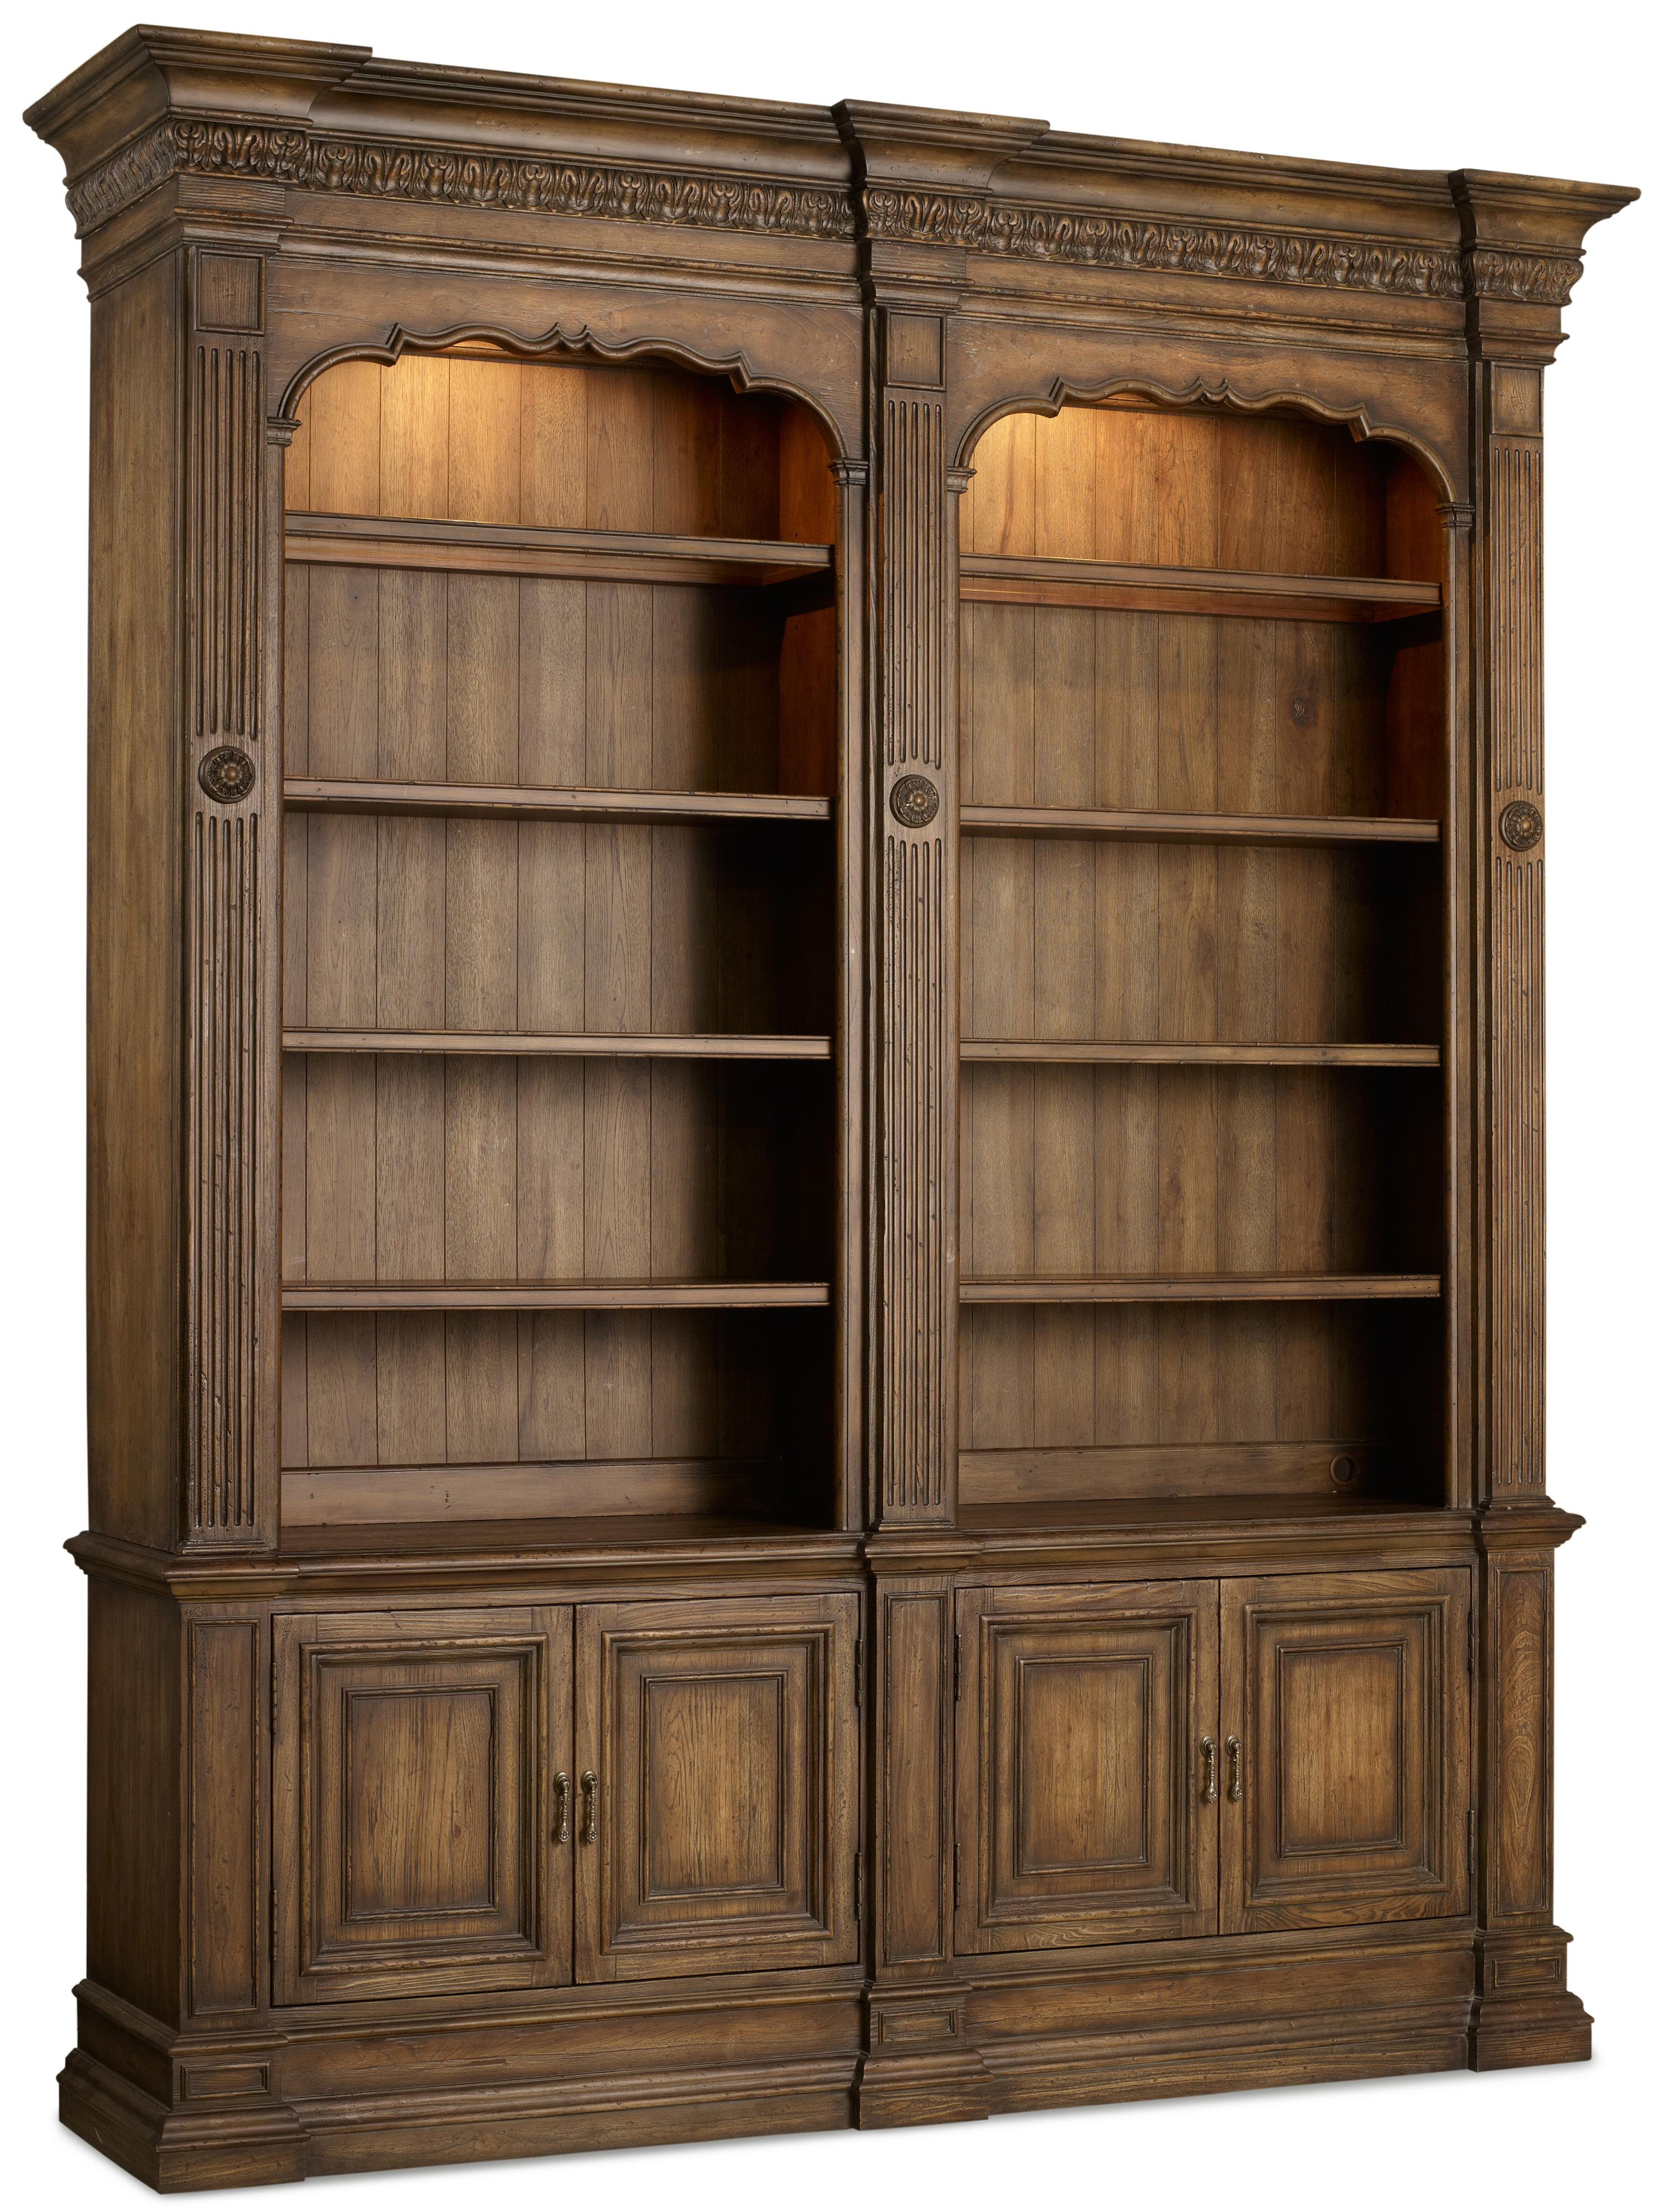 Hooker Furniture Rhapsody Double Bookcase - Item Number: 5070-10226